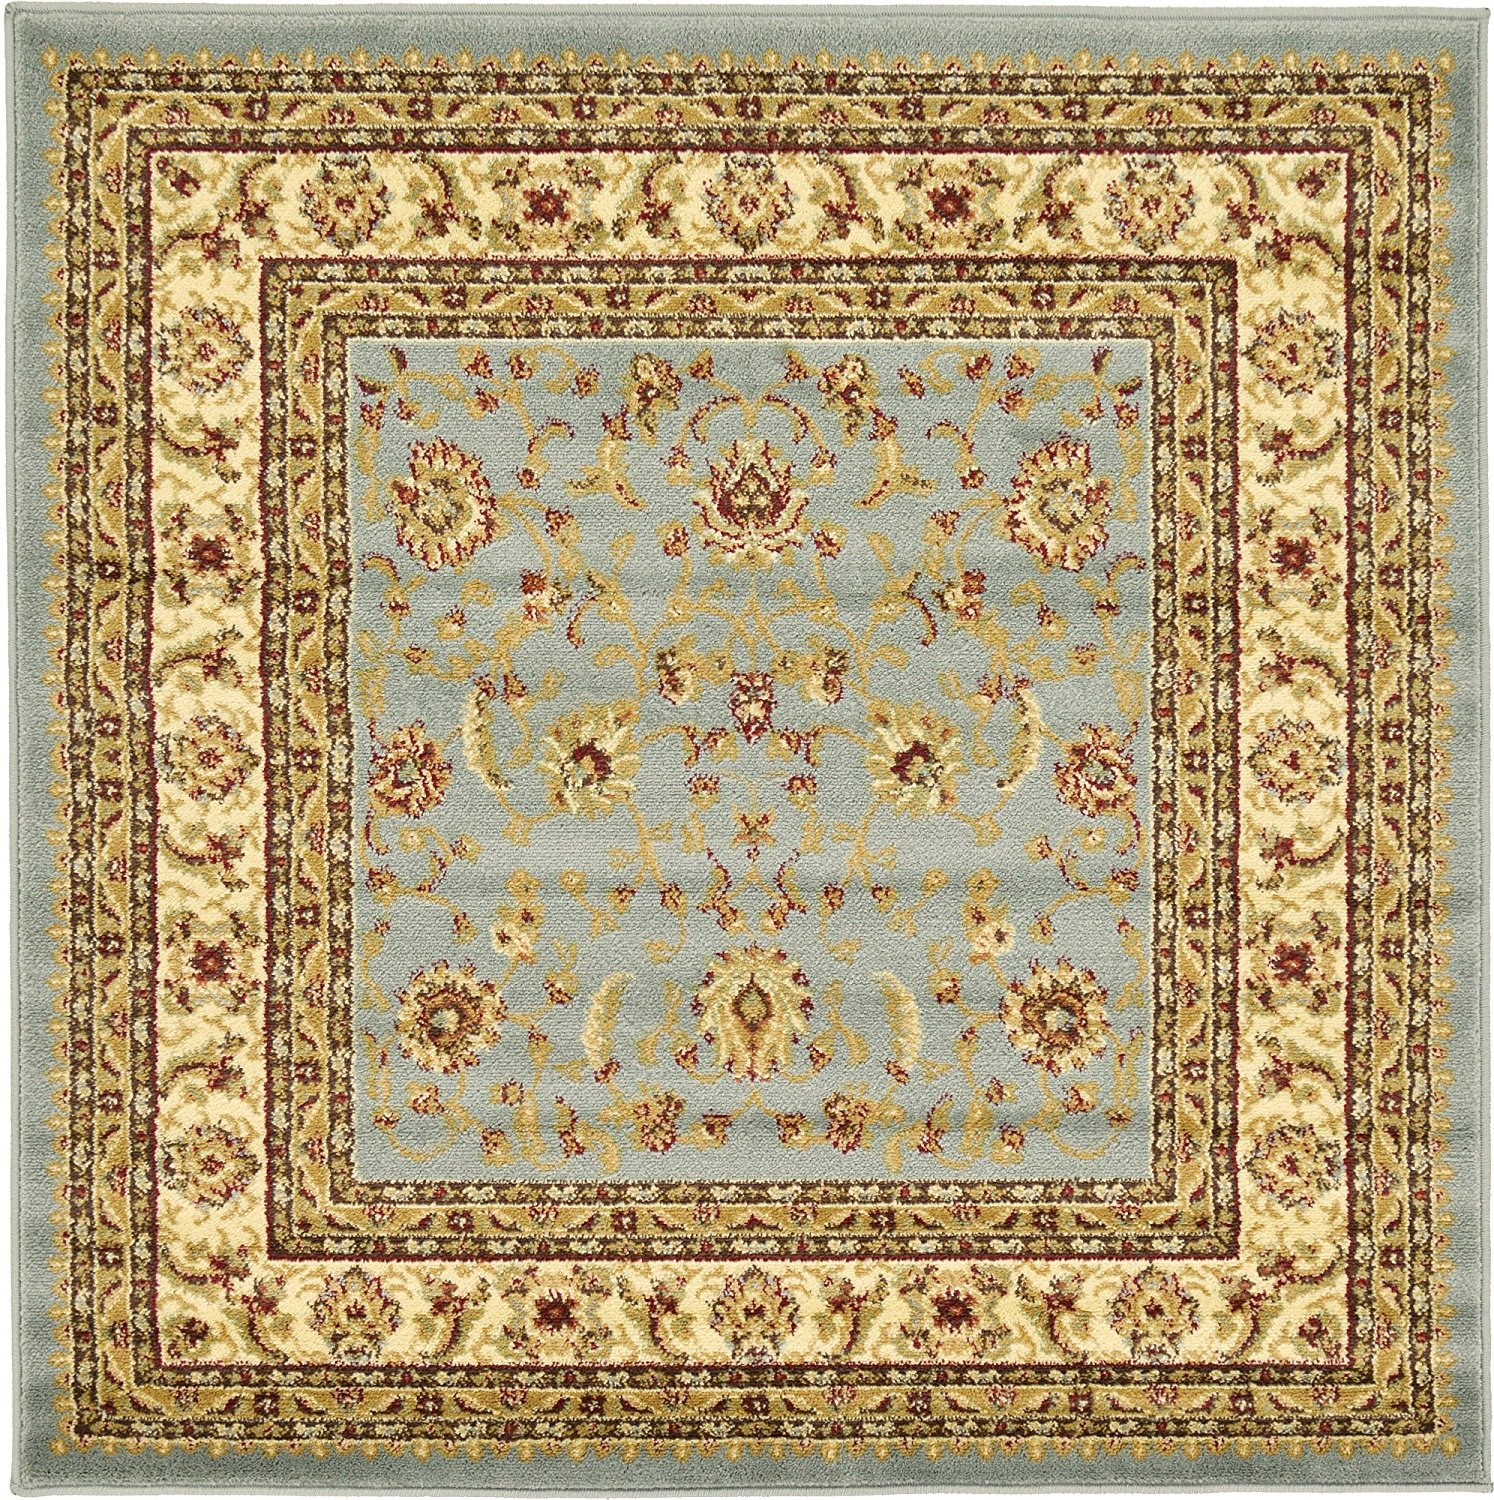 Cheap Light Blue And White Rug Find Light Blue And White Rug Deals On Line At Alibaba Com